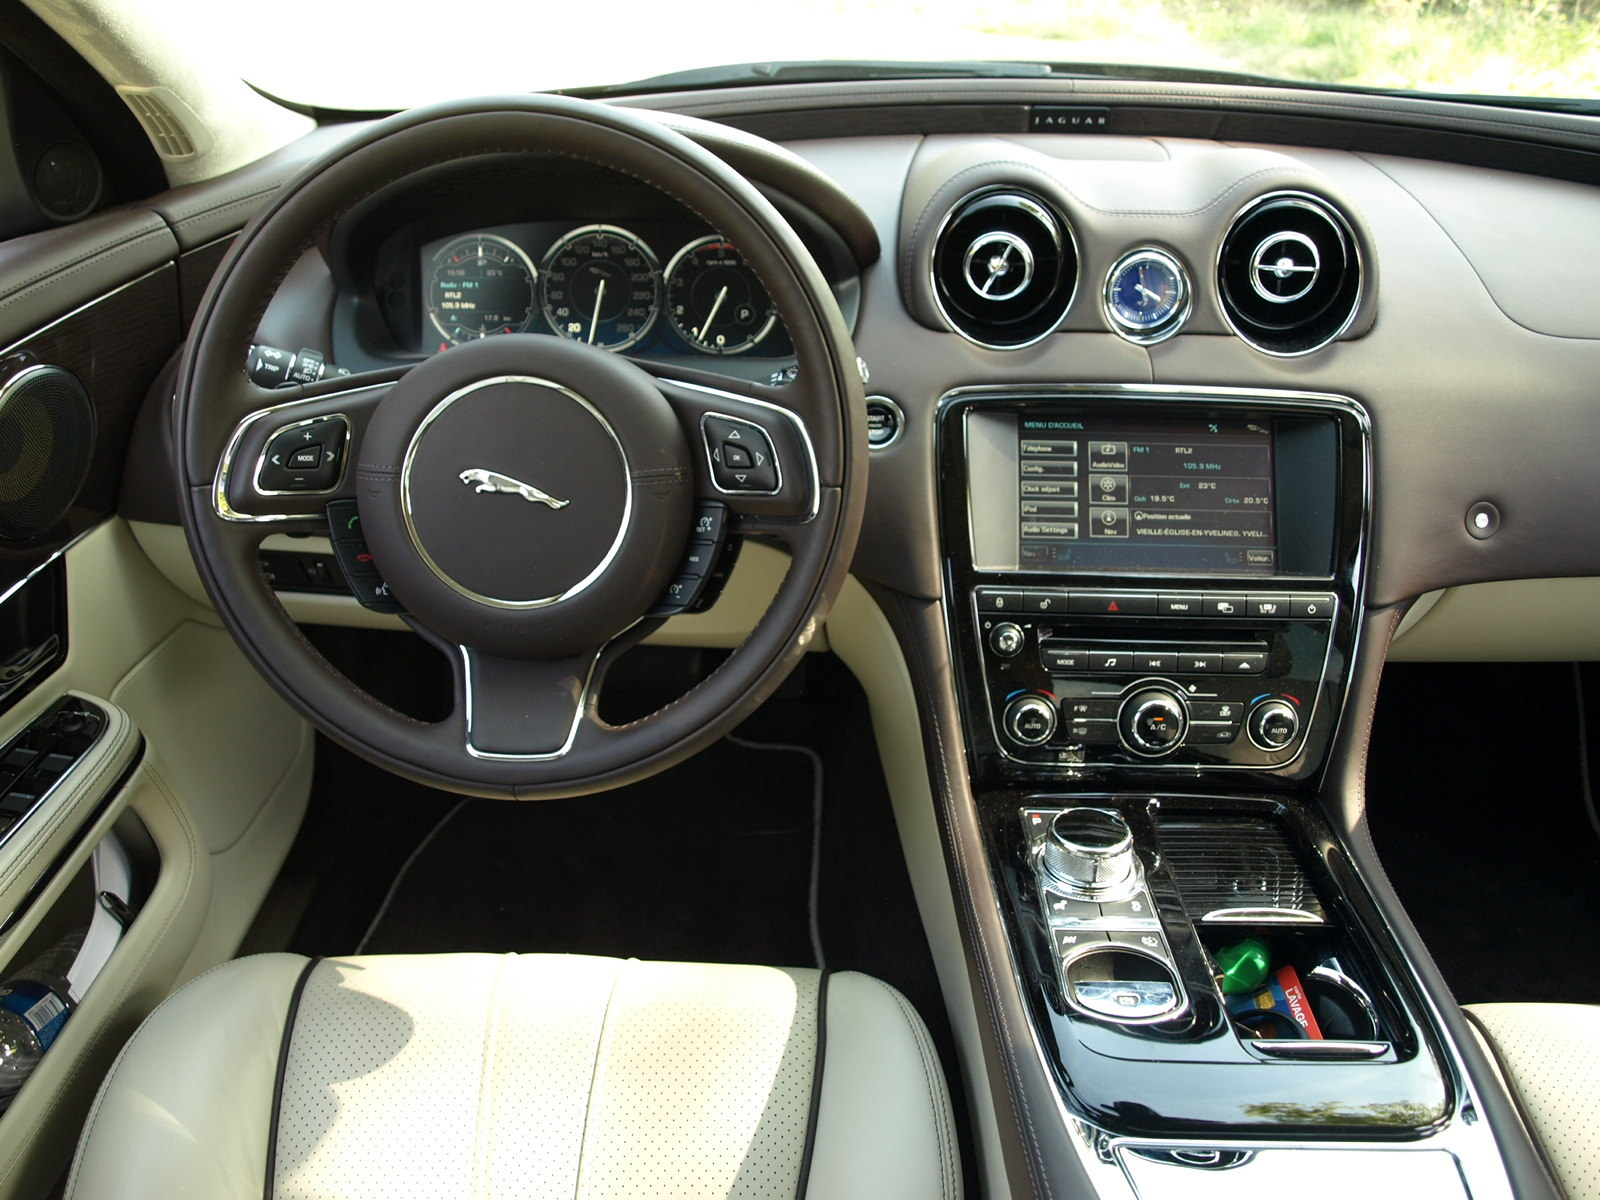 Essai vid o jaguar xj la mutation du f lin for Interieur jaguar